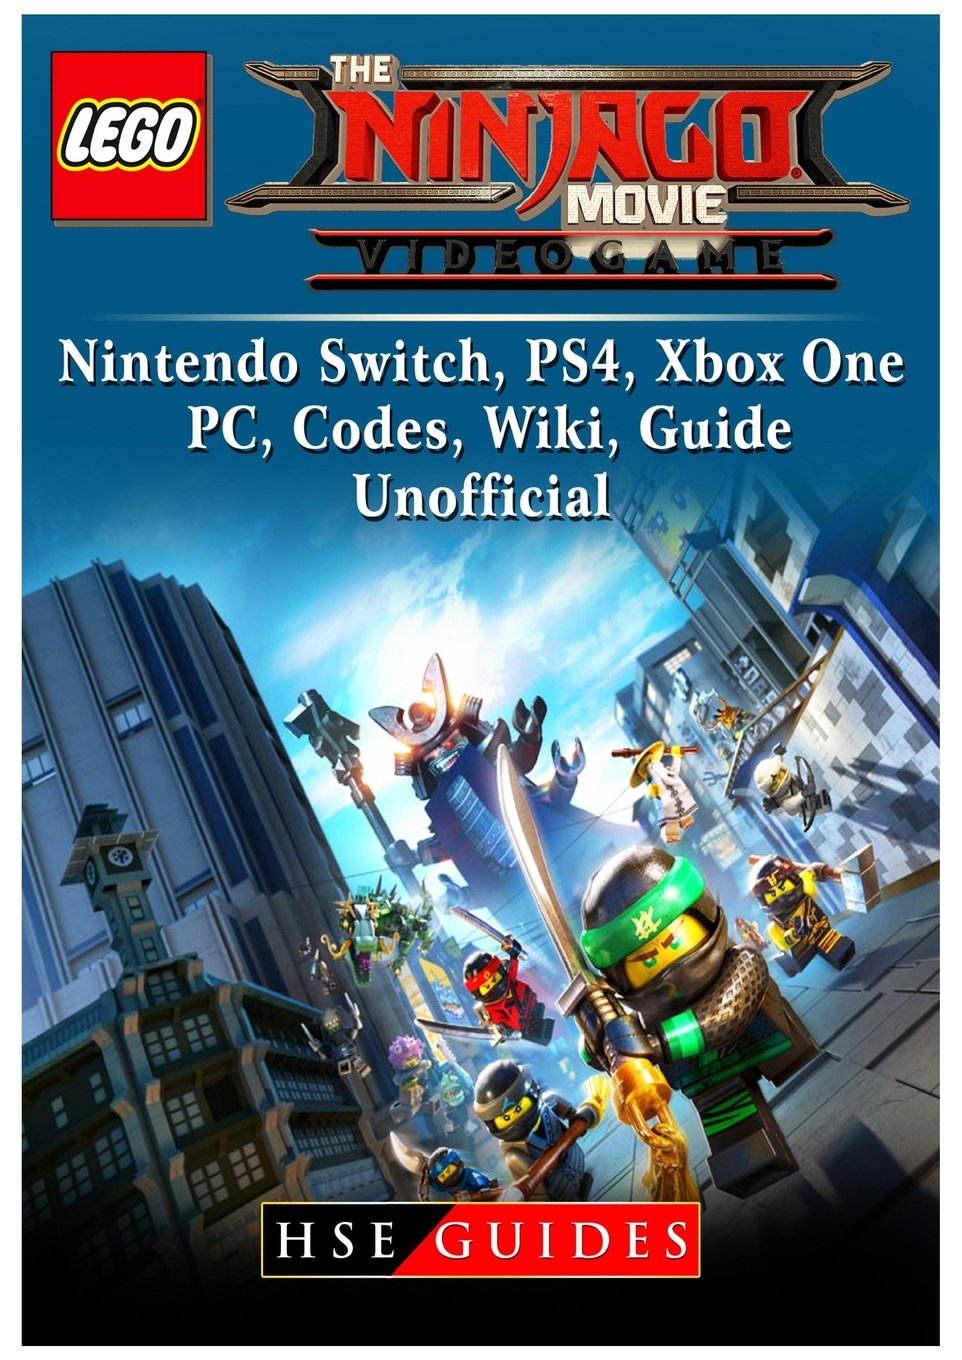 Download The Lego Ninjago Movie Video Game, Nintendo Switch, Ps4, Xbox One, Pc, Codes, Wiki, Guide Unofficial PDF